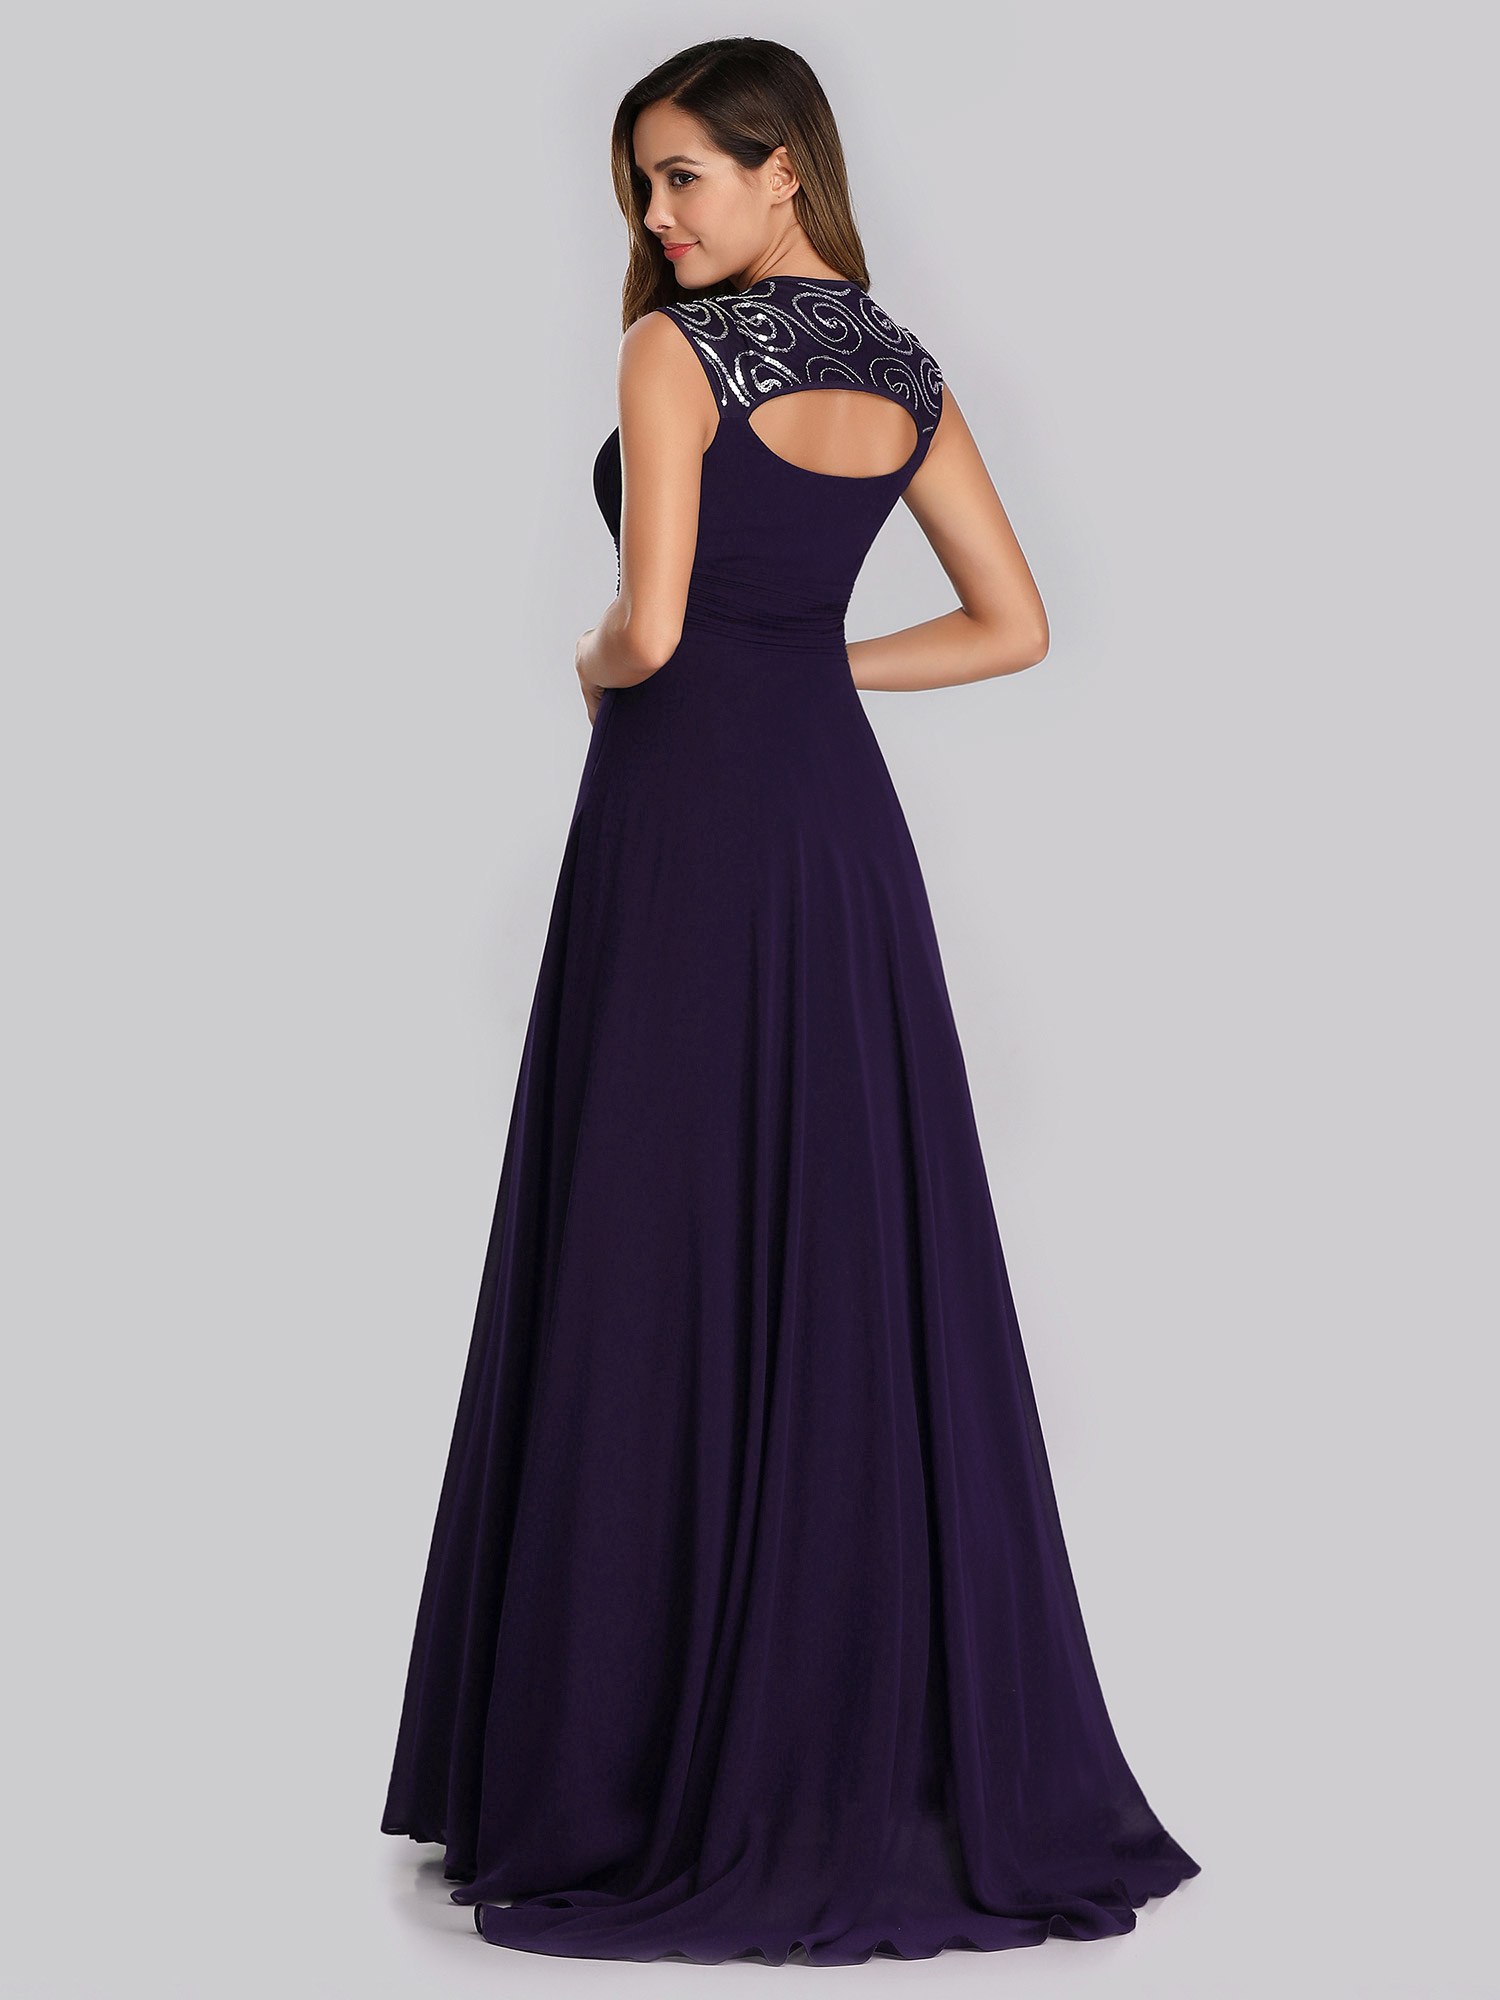 Ever-Pretty-Cap-Sleeve-Bridesmaid-Dresses-Elegant-Long-V-neck-Evening-Gown-09672 thumbnail 19